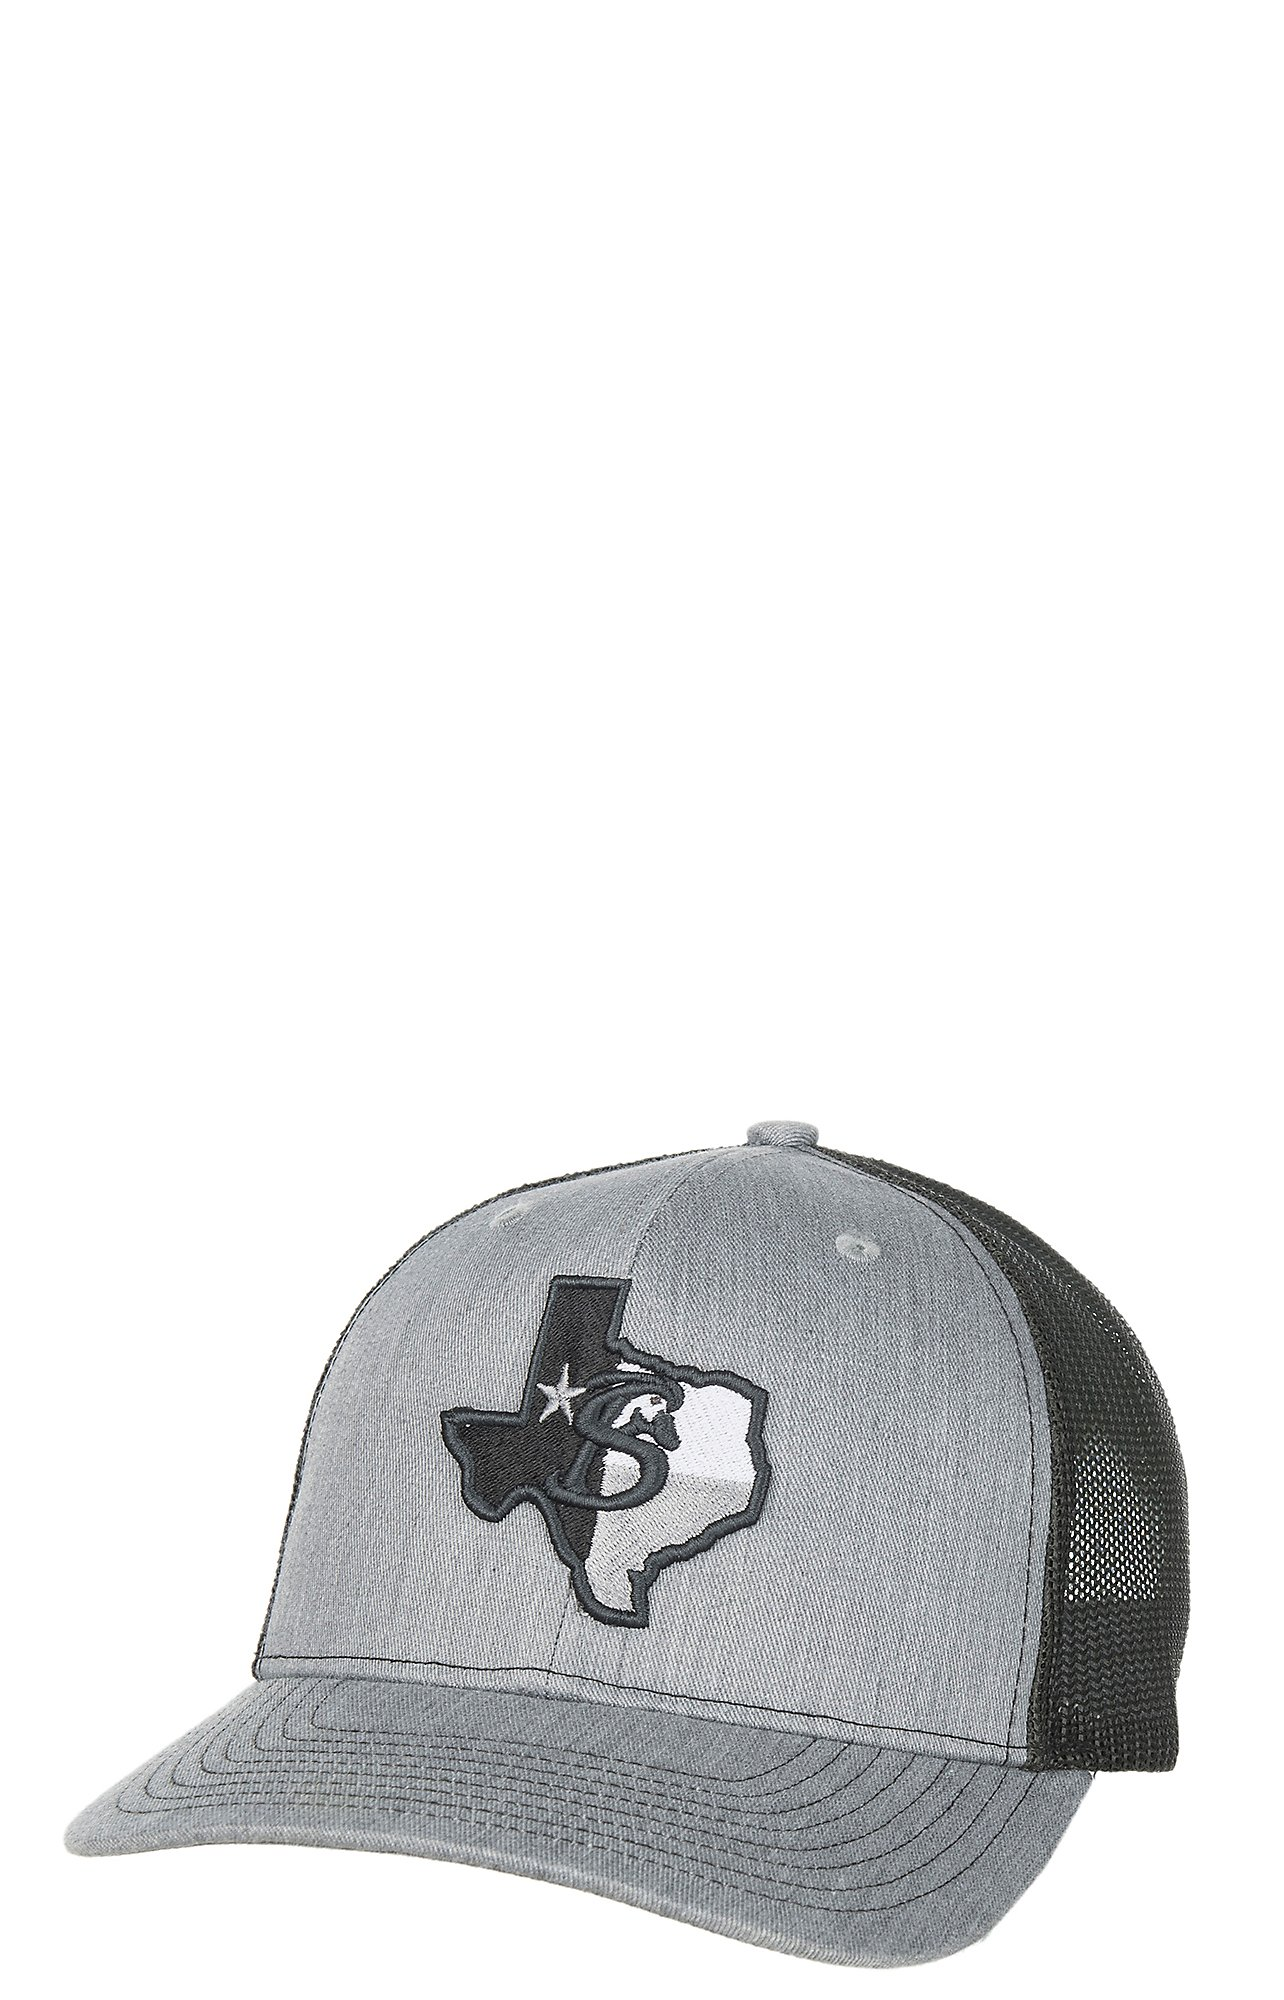 Stackin Bills Grey with Texas Logo Patch and Mesh Snap Back Cap ... 99a98bf0b47